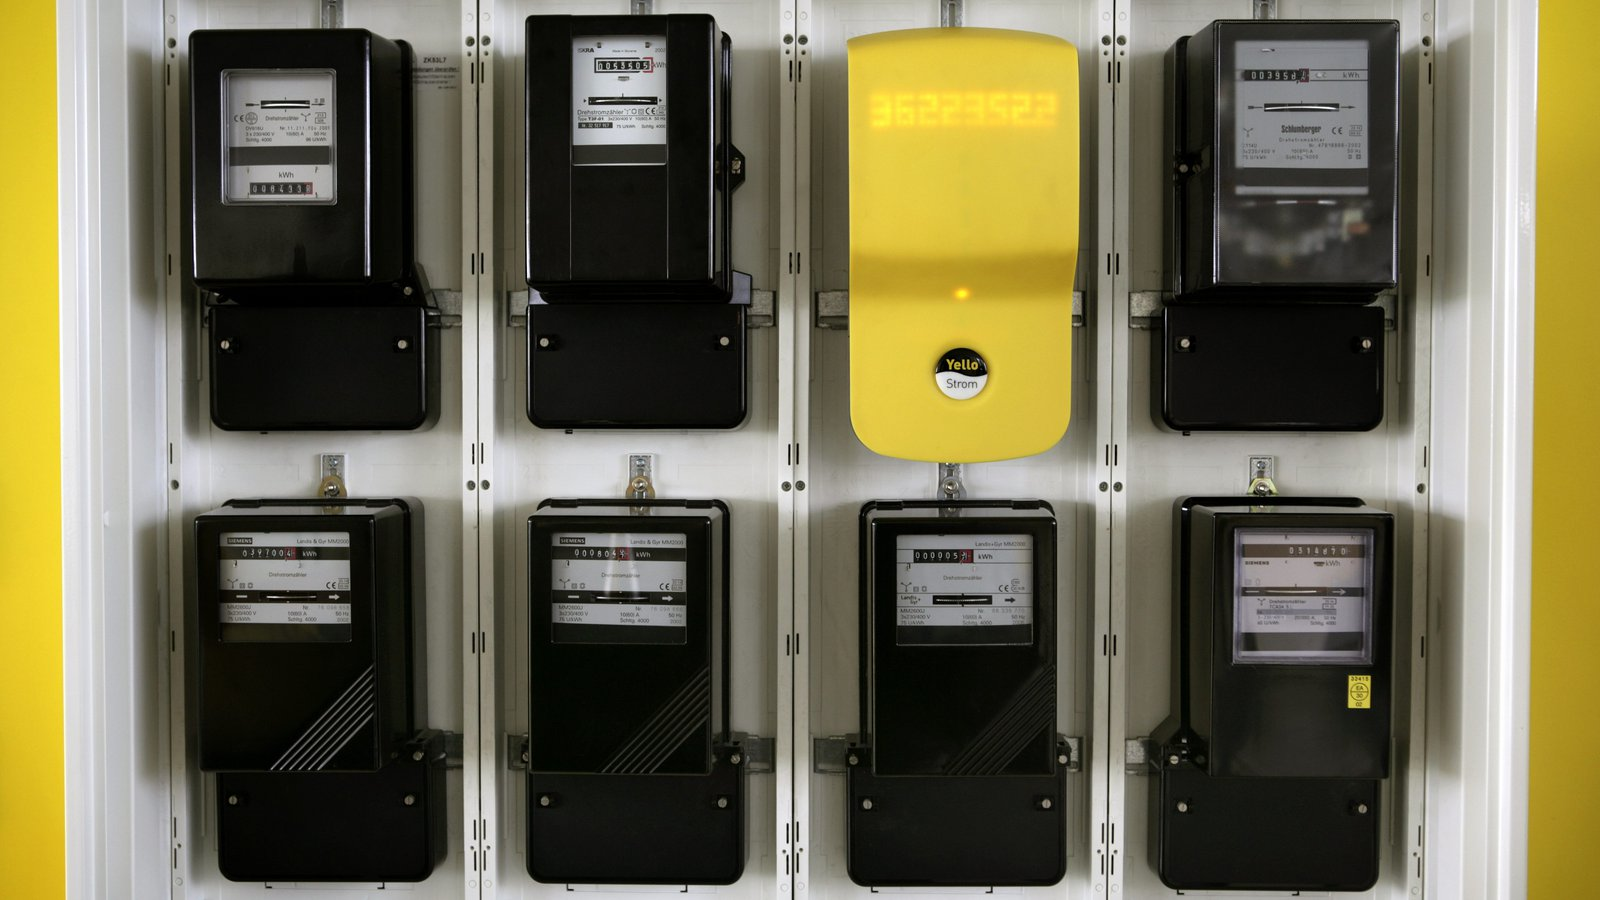 https://static-hoffmanncentre.chathamhouse.org/thumbnails/blocks/images/2019-01-18-Smart-Electric-Meter.jpg.1600x900_q85_crop_upscale.jpg